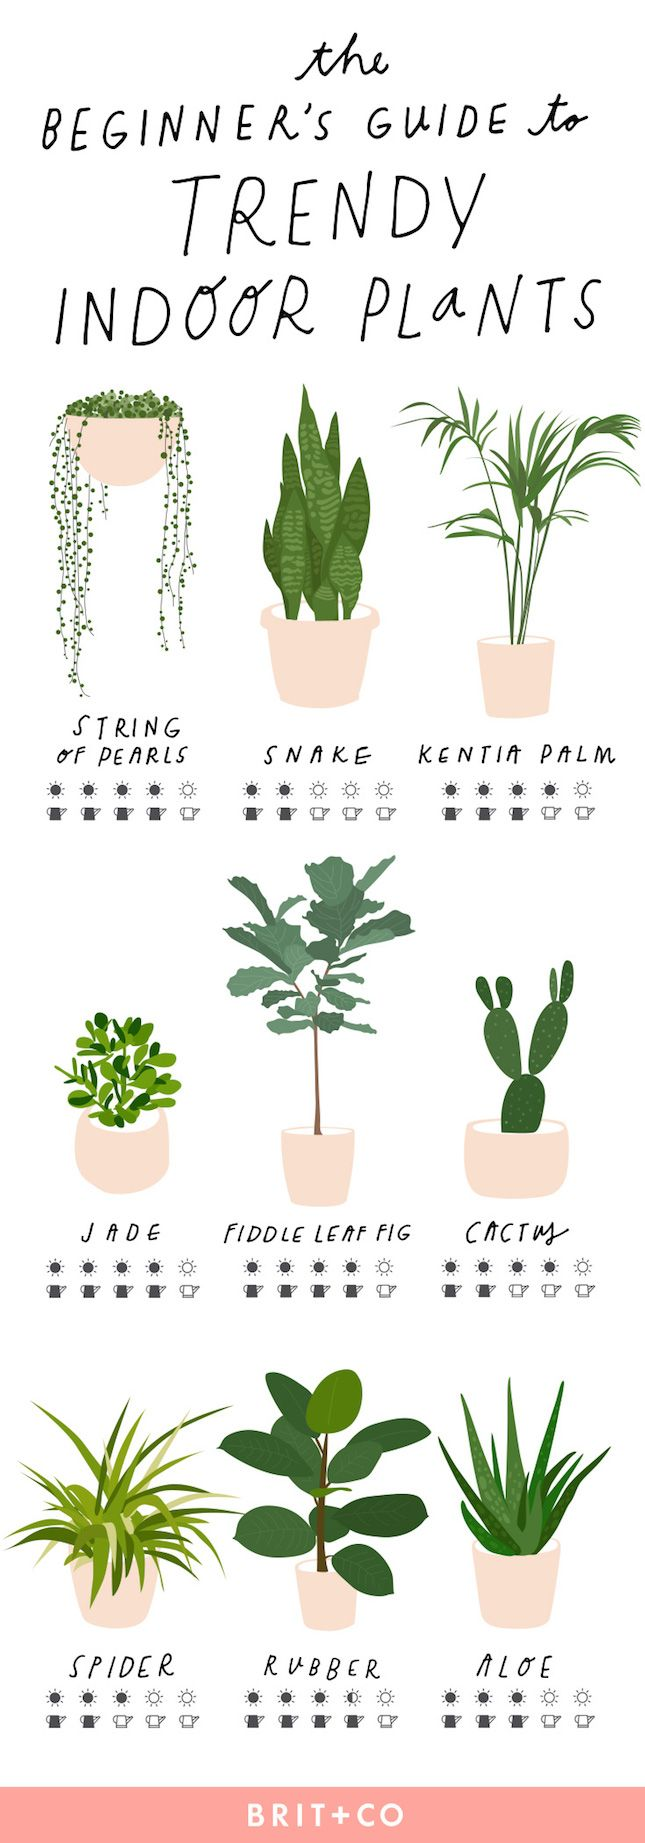 The Beginners Guide to Trendy Indoor Plants Plants Gardens and